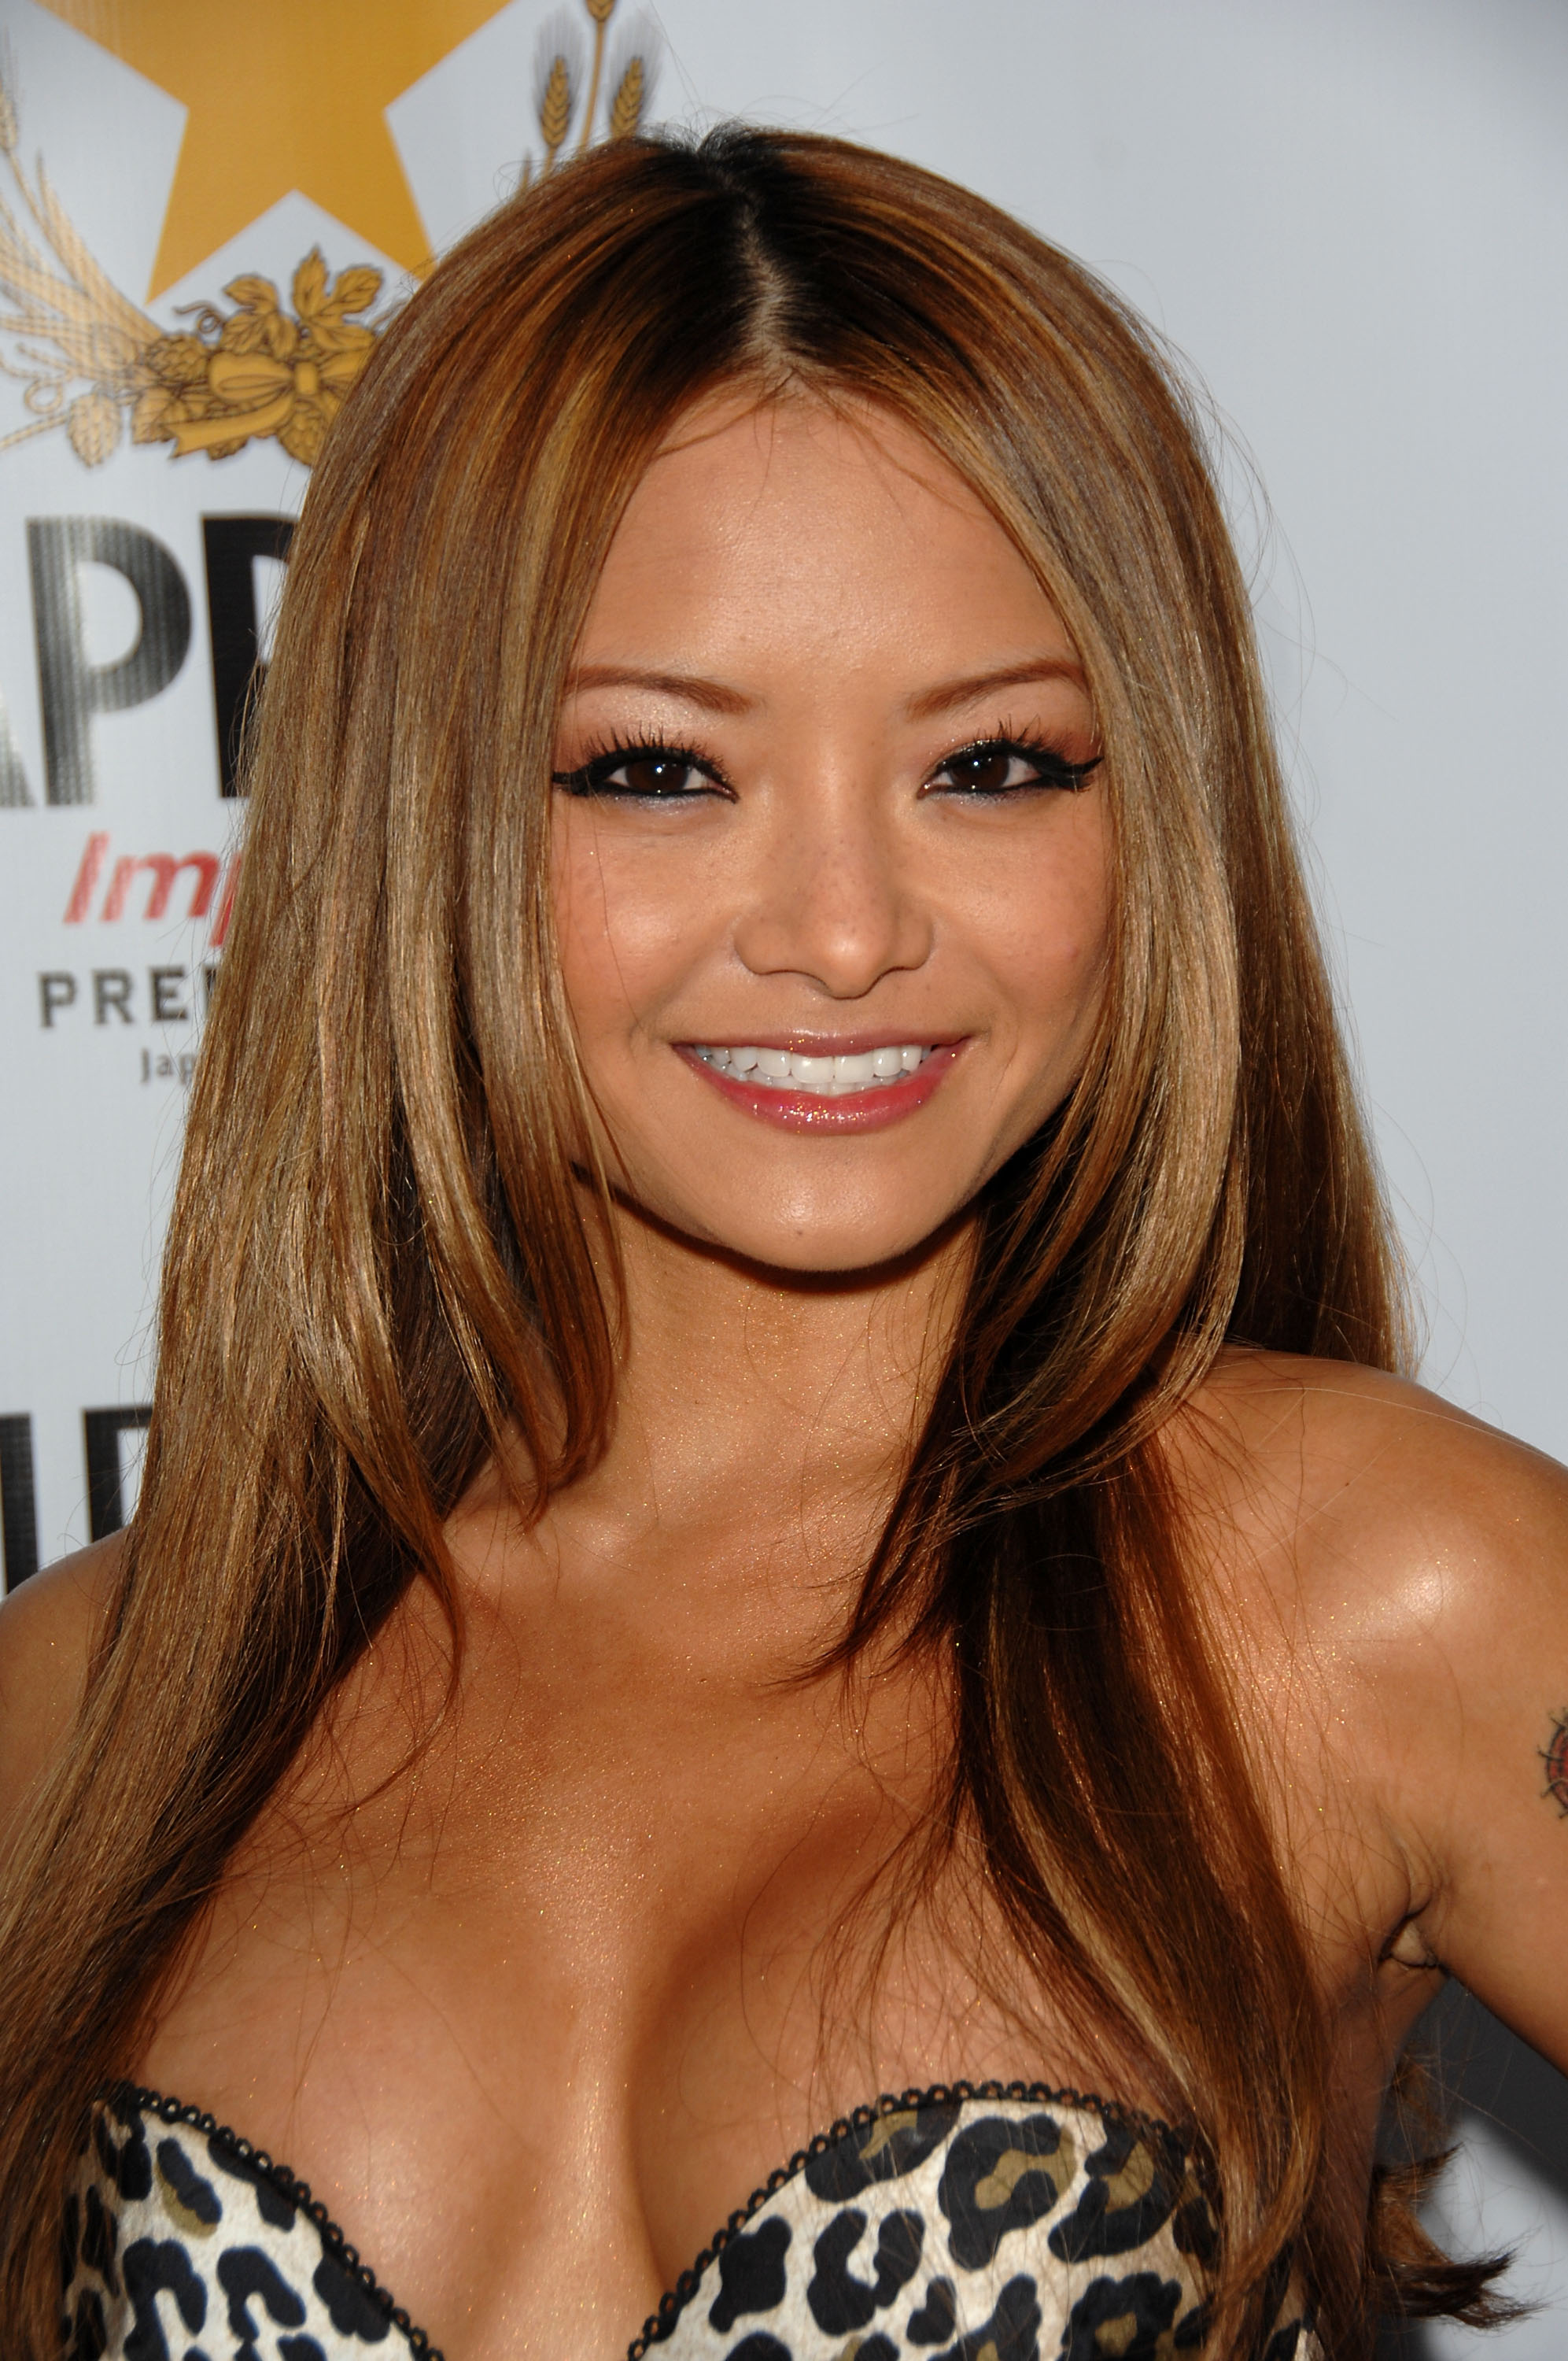 92999_Celebutopia-Tila_Tequila-Los_Angeles_Confidential_Magazine15s_Pre-Emmy_Party-03_122_1174lo.jpg